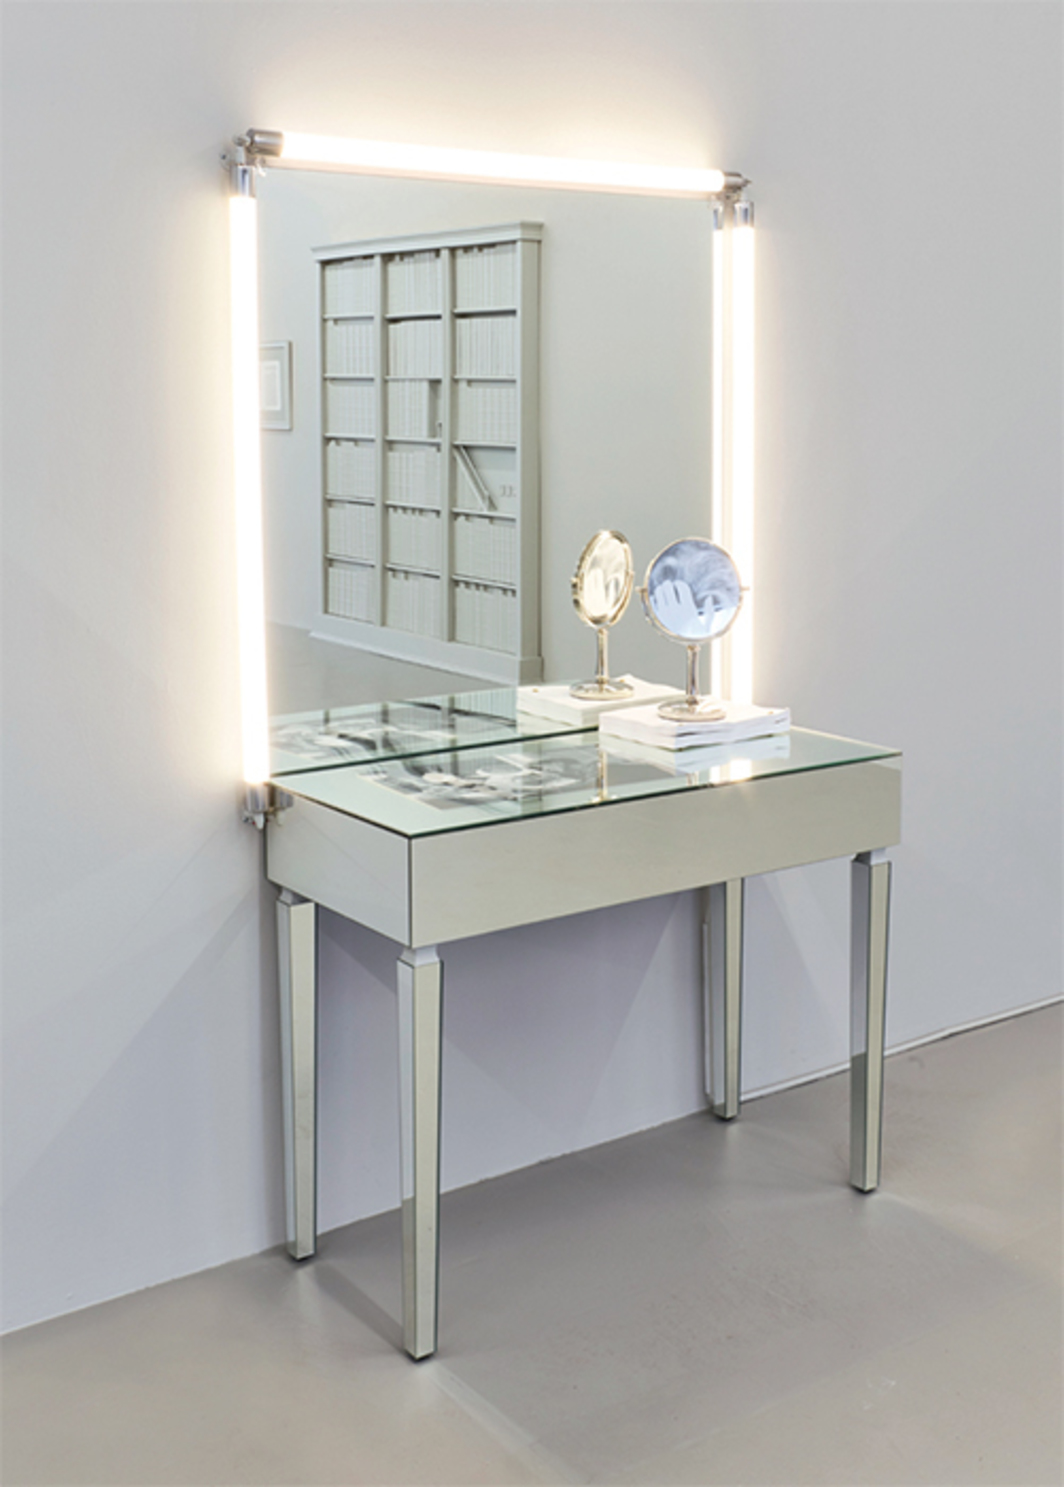 Barbara Bloom, Vanity, 2017, vanity mirror and lighting, mirrored vanity table, photo-etched vanity mirror, digital ink-jet print, movie scripts. Installation view. Photo: Max Yawney.